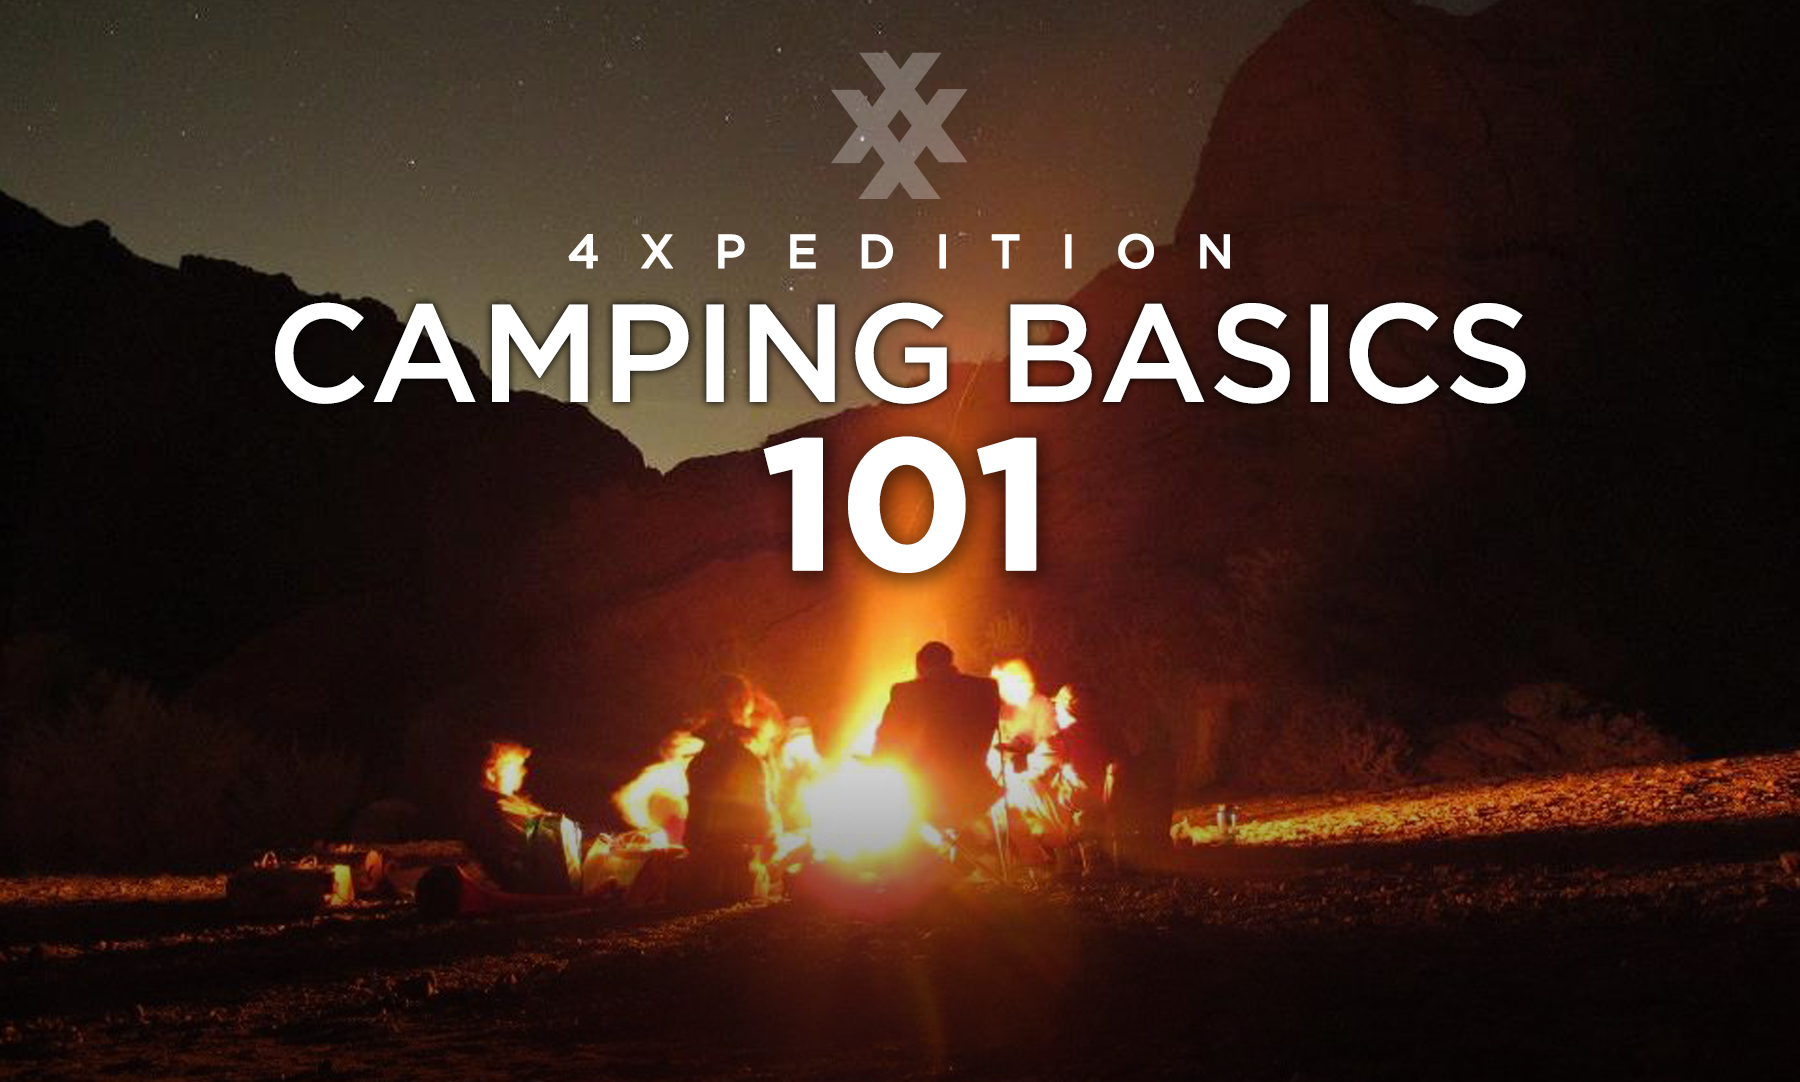 4XPEDITION Camping Basics 101